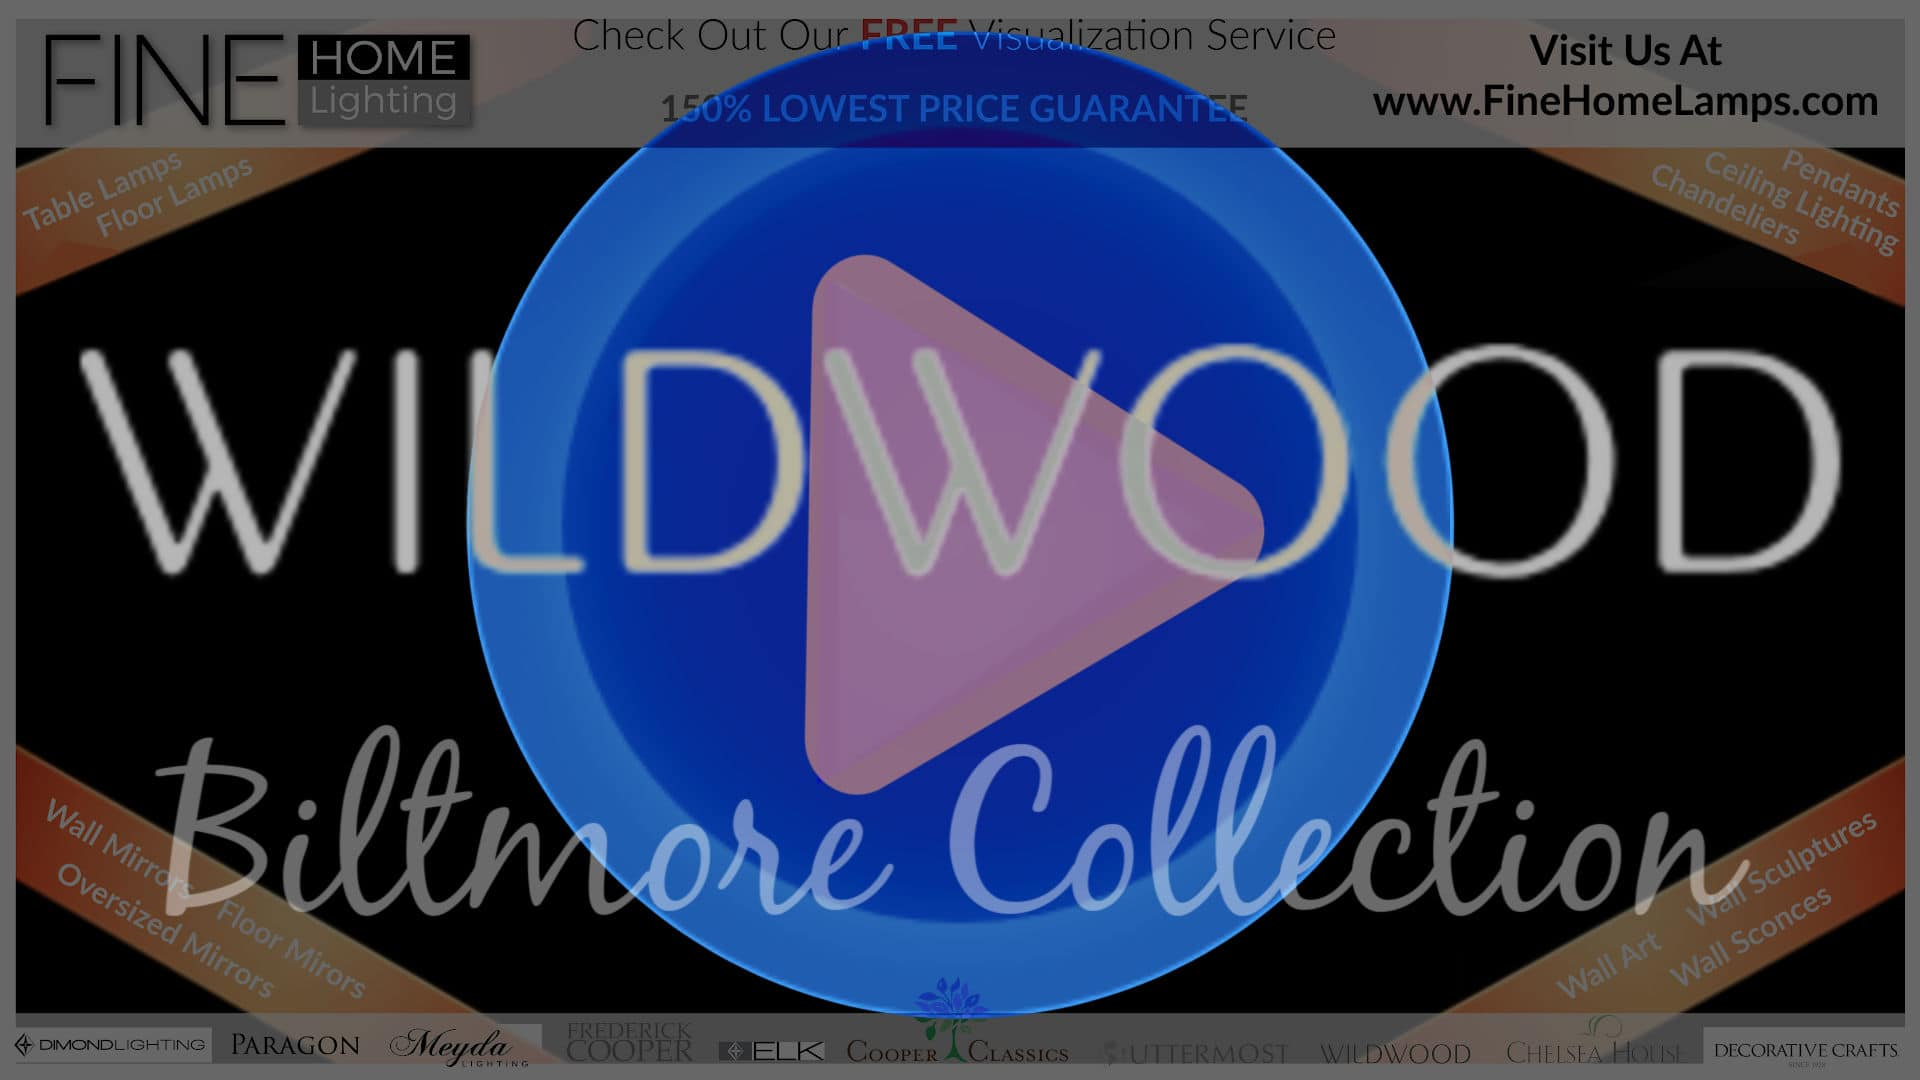 Wildwood-Biltmore-Collection-Thanks-for-watching-this-video-Get-an-additional-15-percent-off-your-next-purchase-Use-Coupon-Code-VIDEO